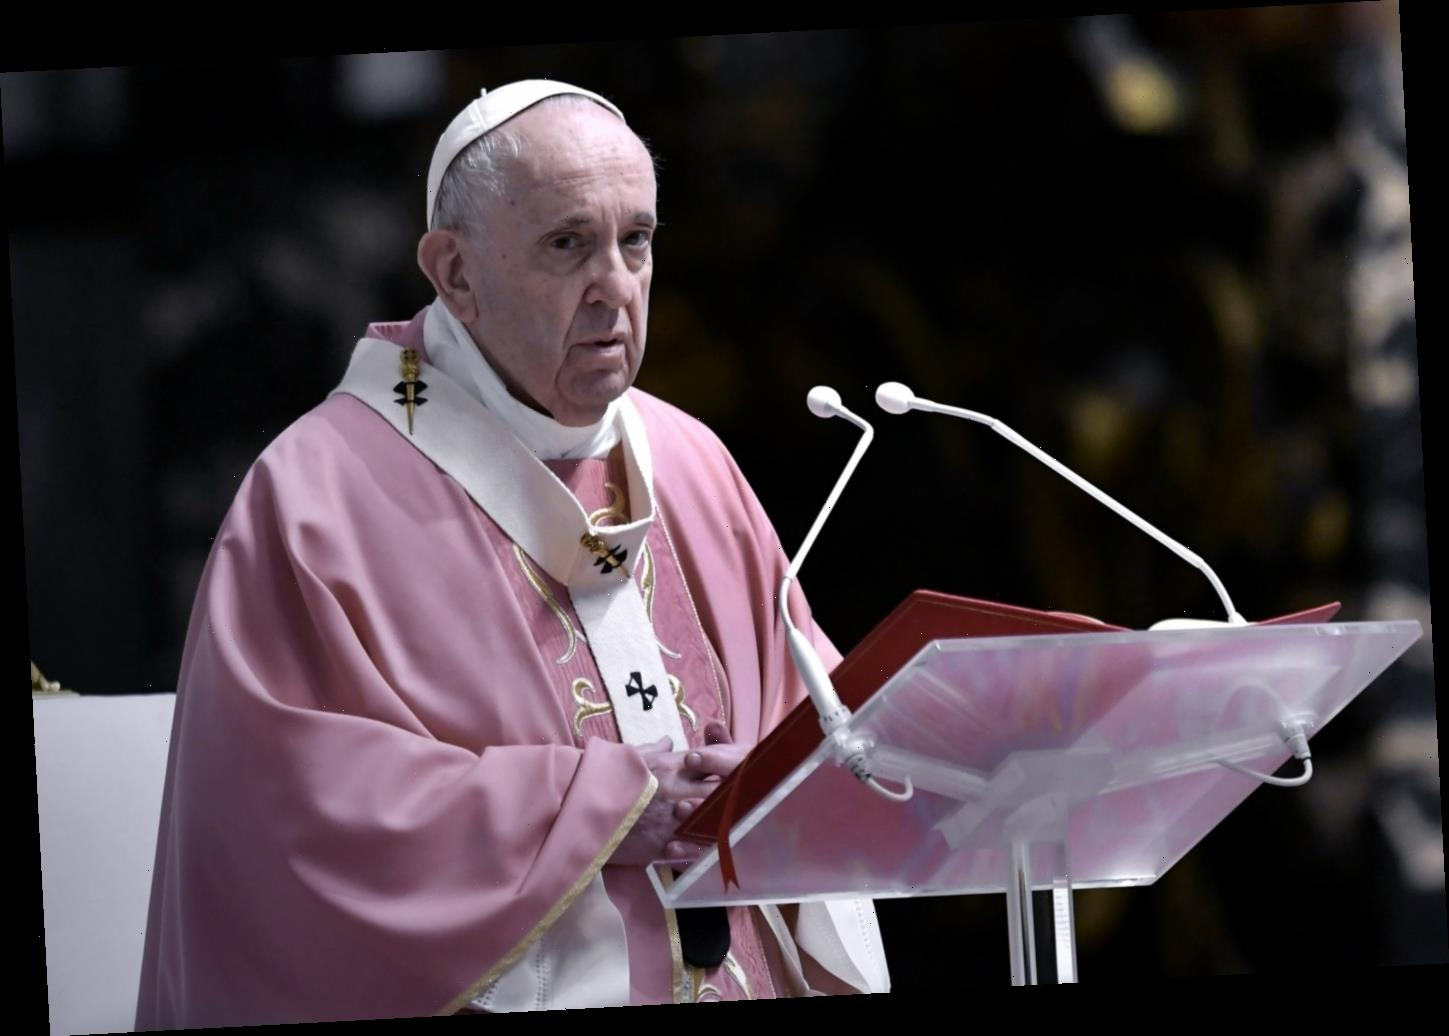 Pope Francis: Catholic priests can't bless 'illicit, sinful' gay marriages